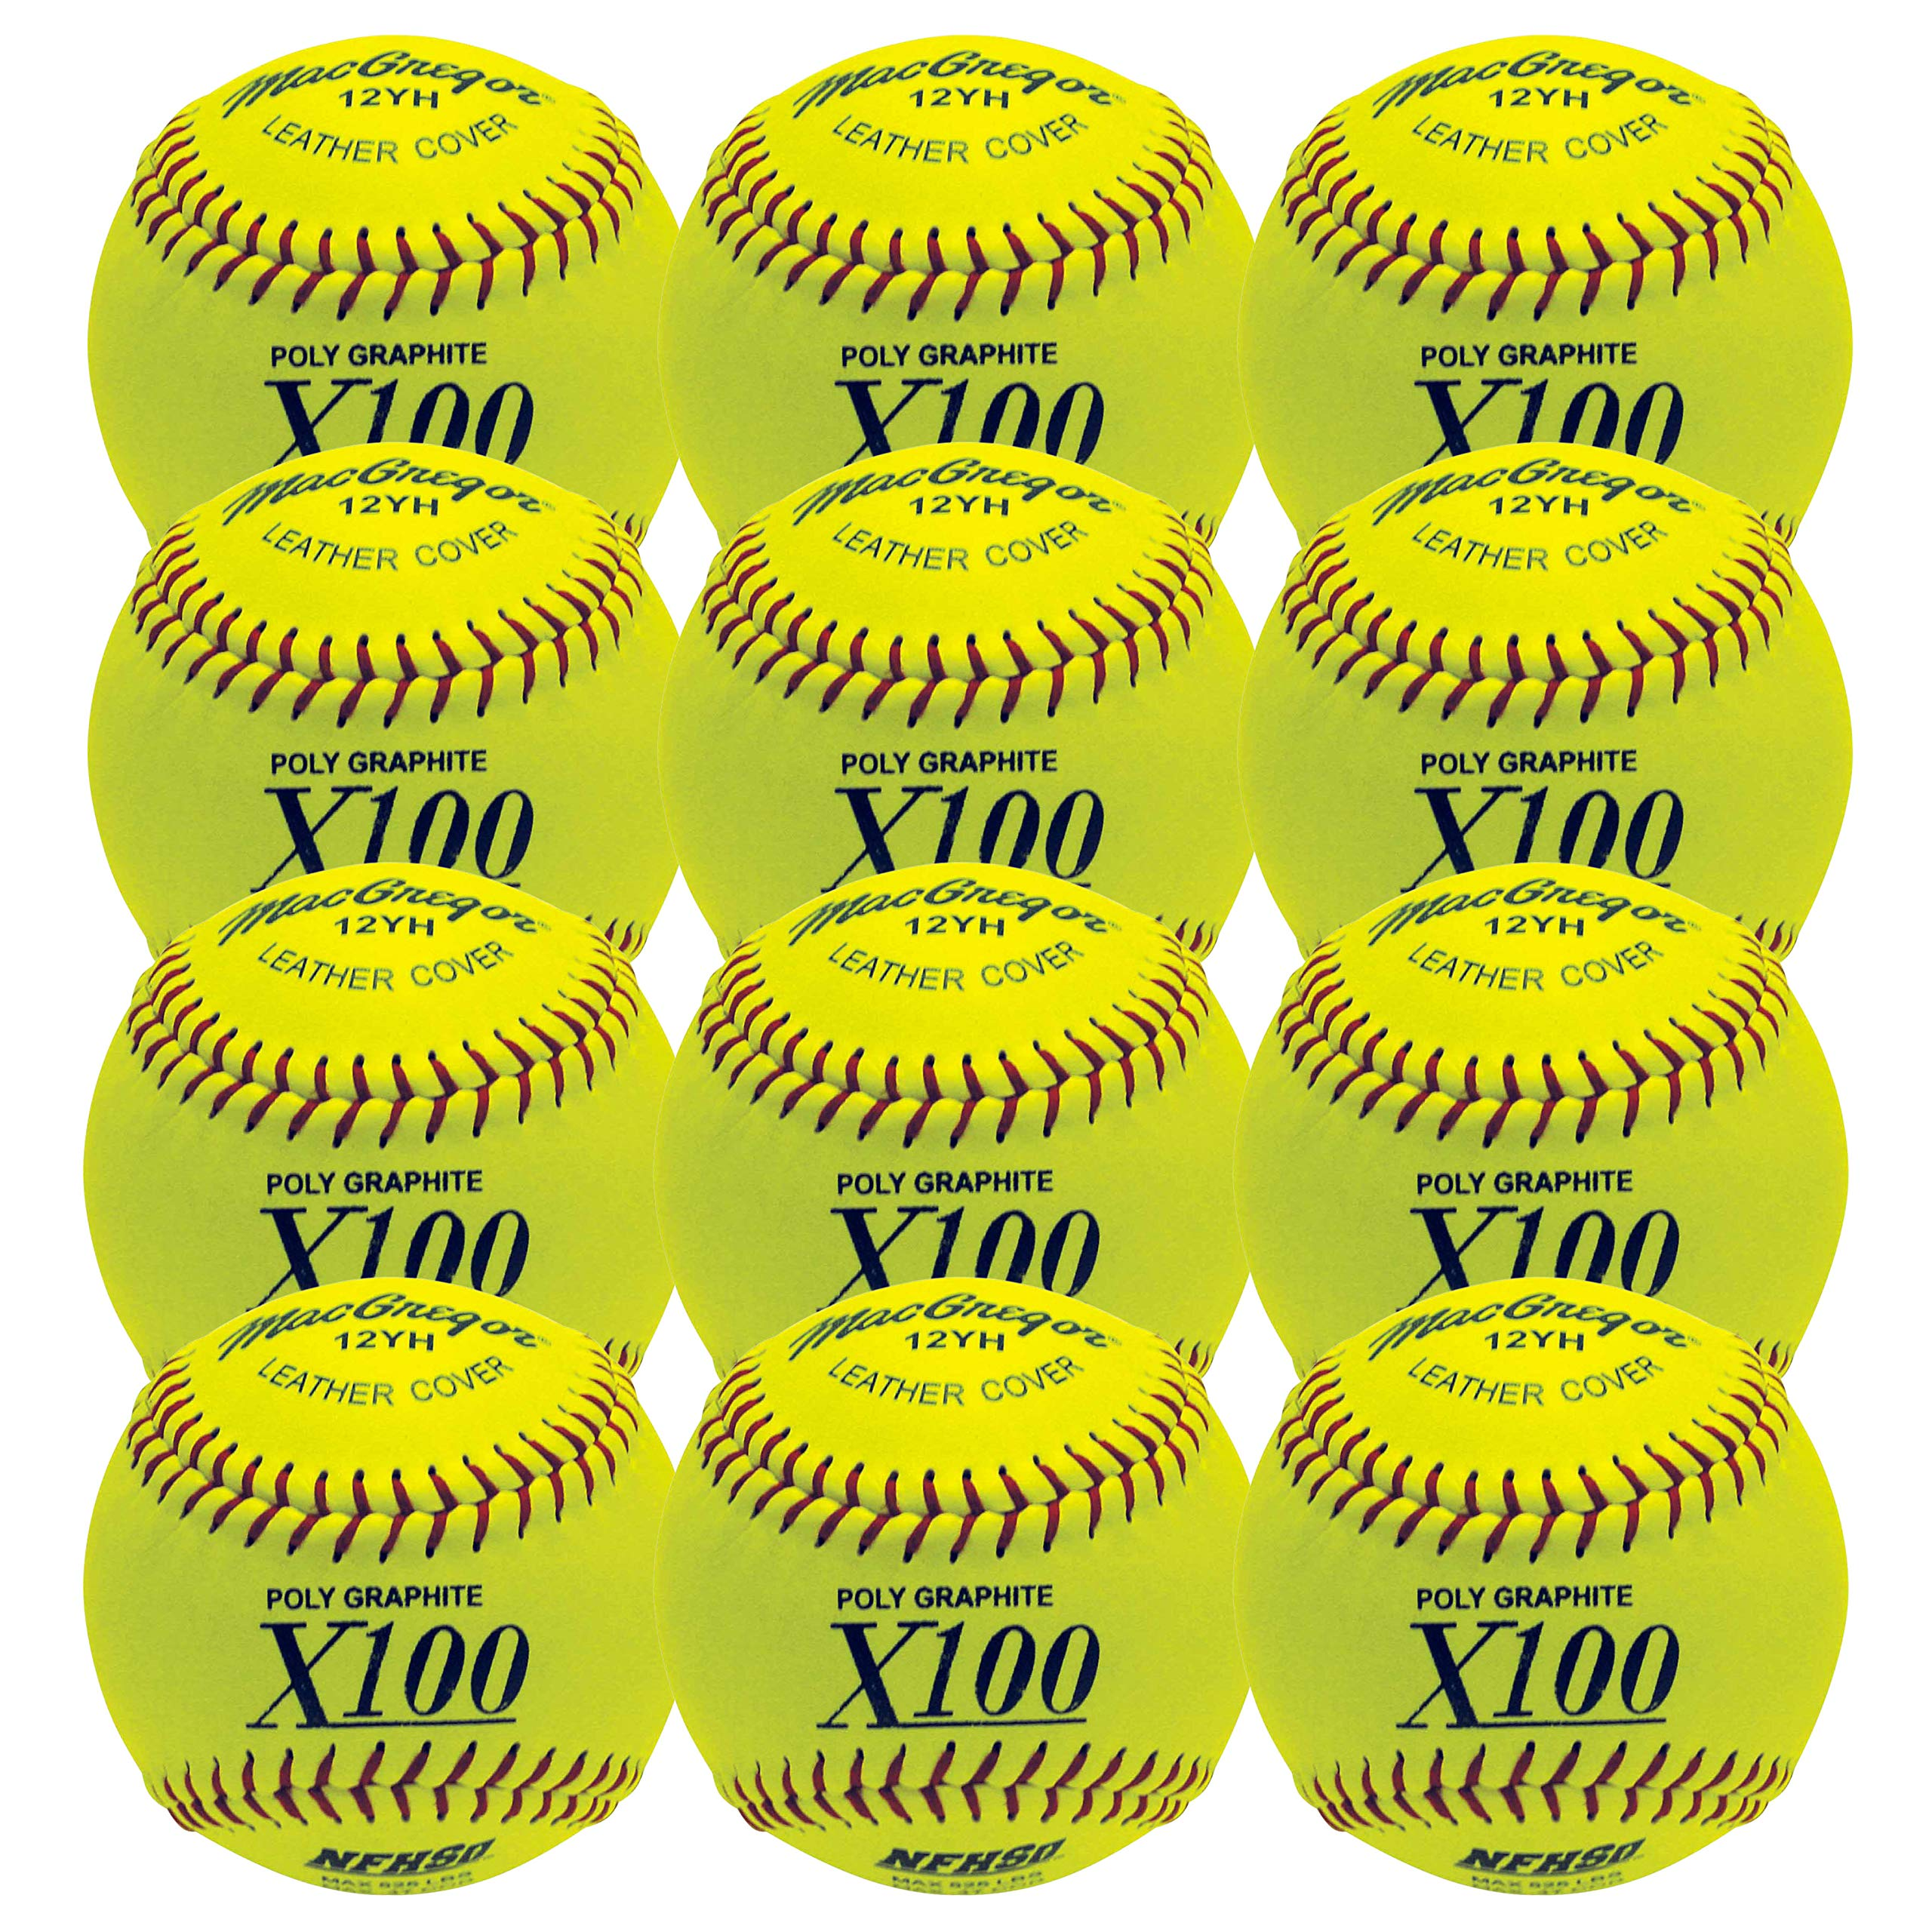 MacGregor NFHS Fast Pitch Softball, 12-inch (One Dozen) by MACGREGOR